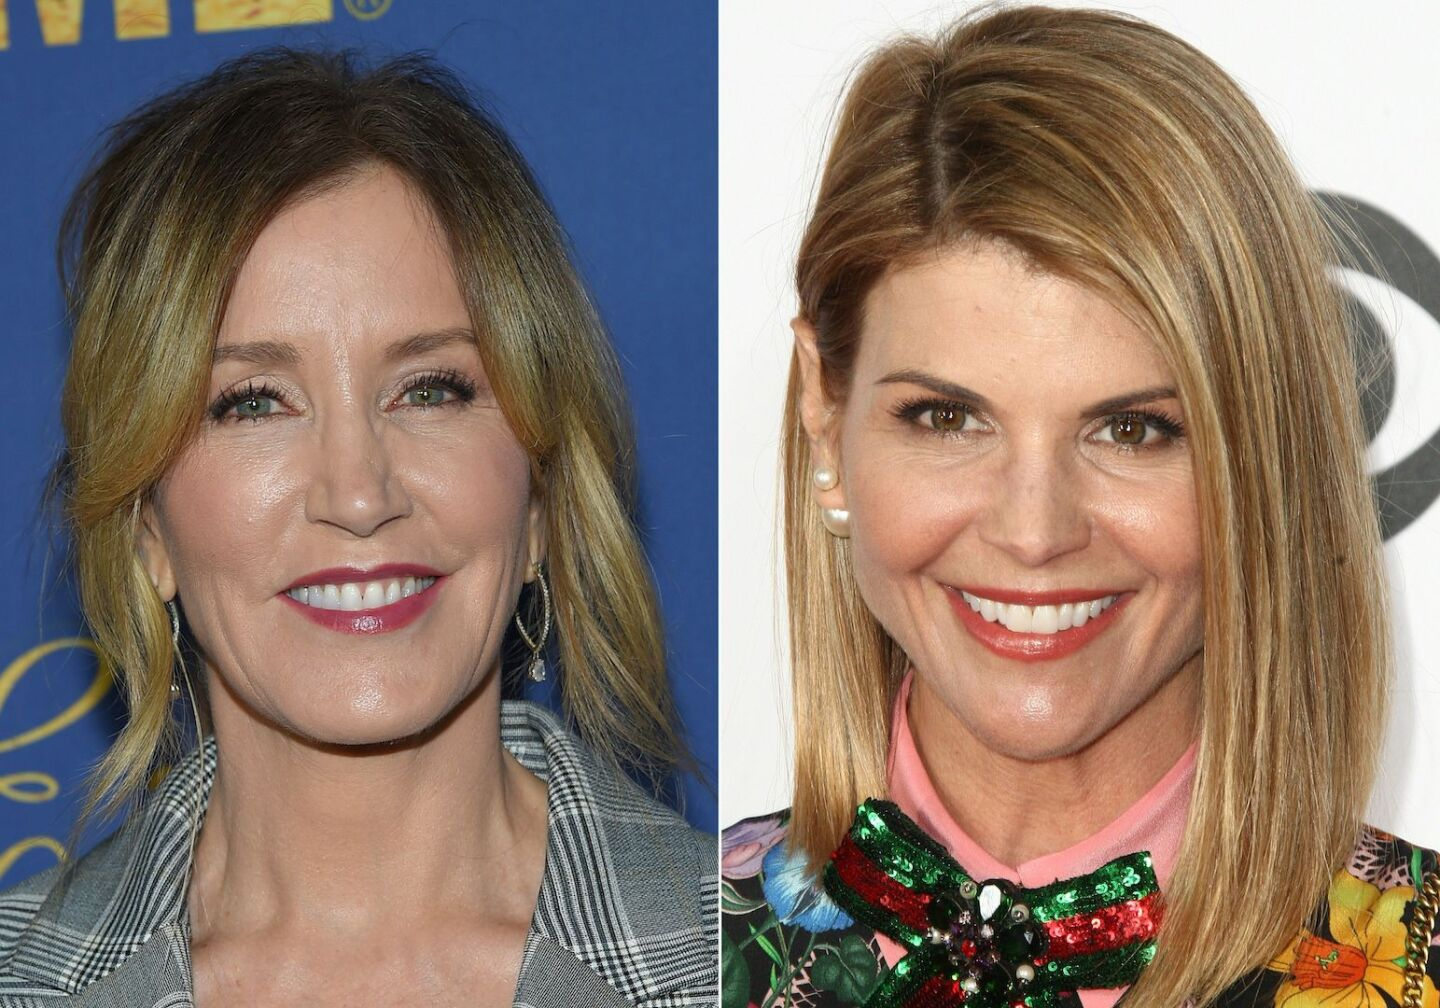 Felicity Huffman and Lori Loughlin, two actressed indicted in college admissions scandal